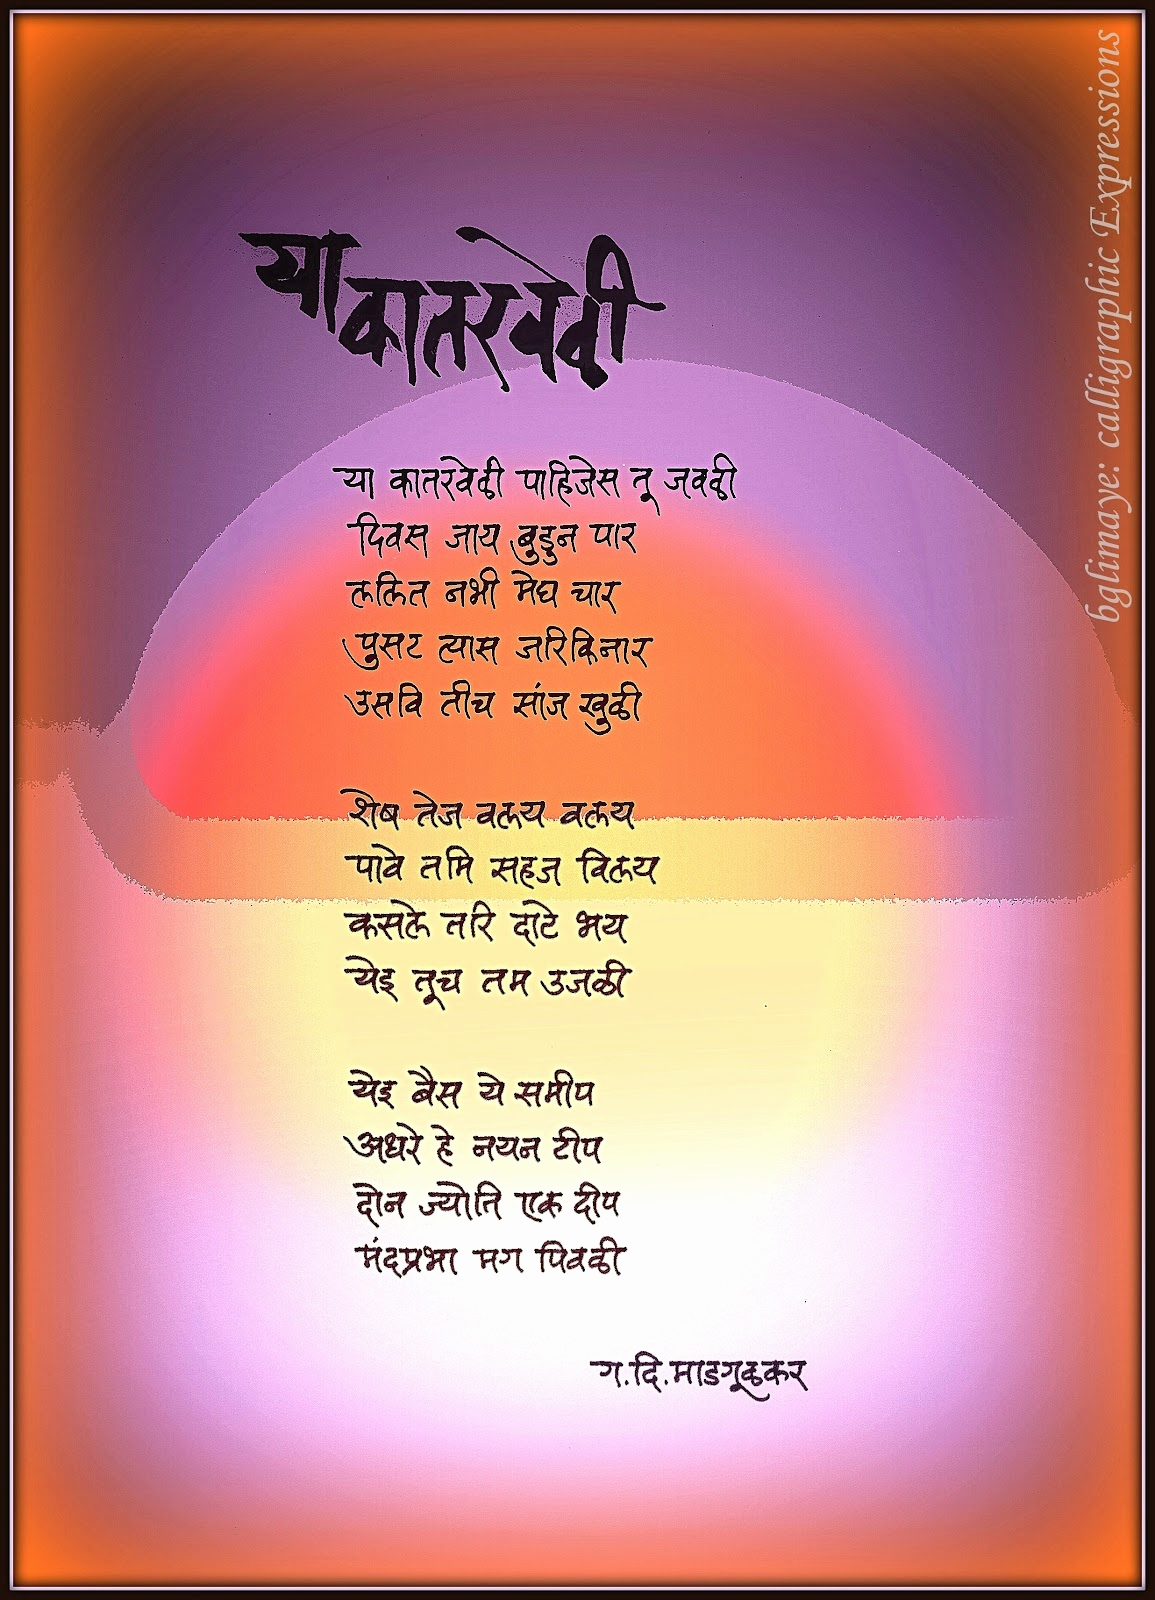 marathi birthday greeting cards for friends ; marathi-birthday-card-best-of-inspiring-marathi-write-up-for-sister-happy-birthday-wishes-for-of-marathi-birthday-card